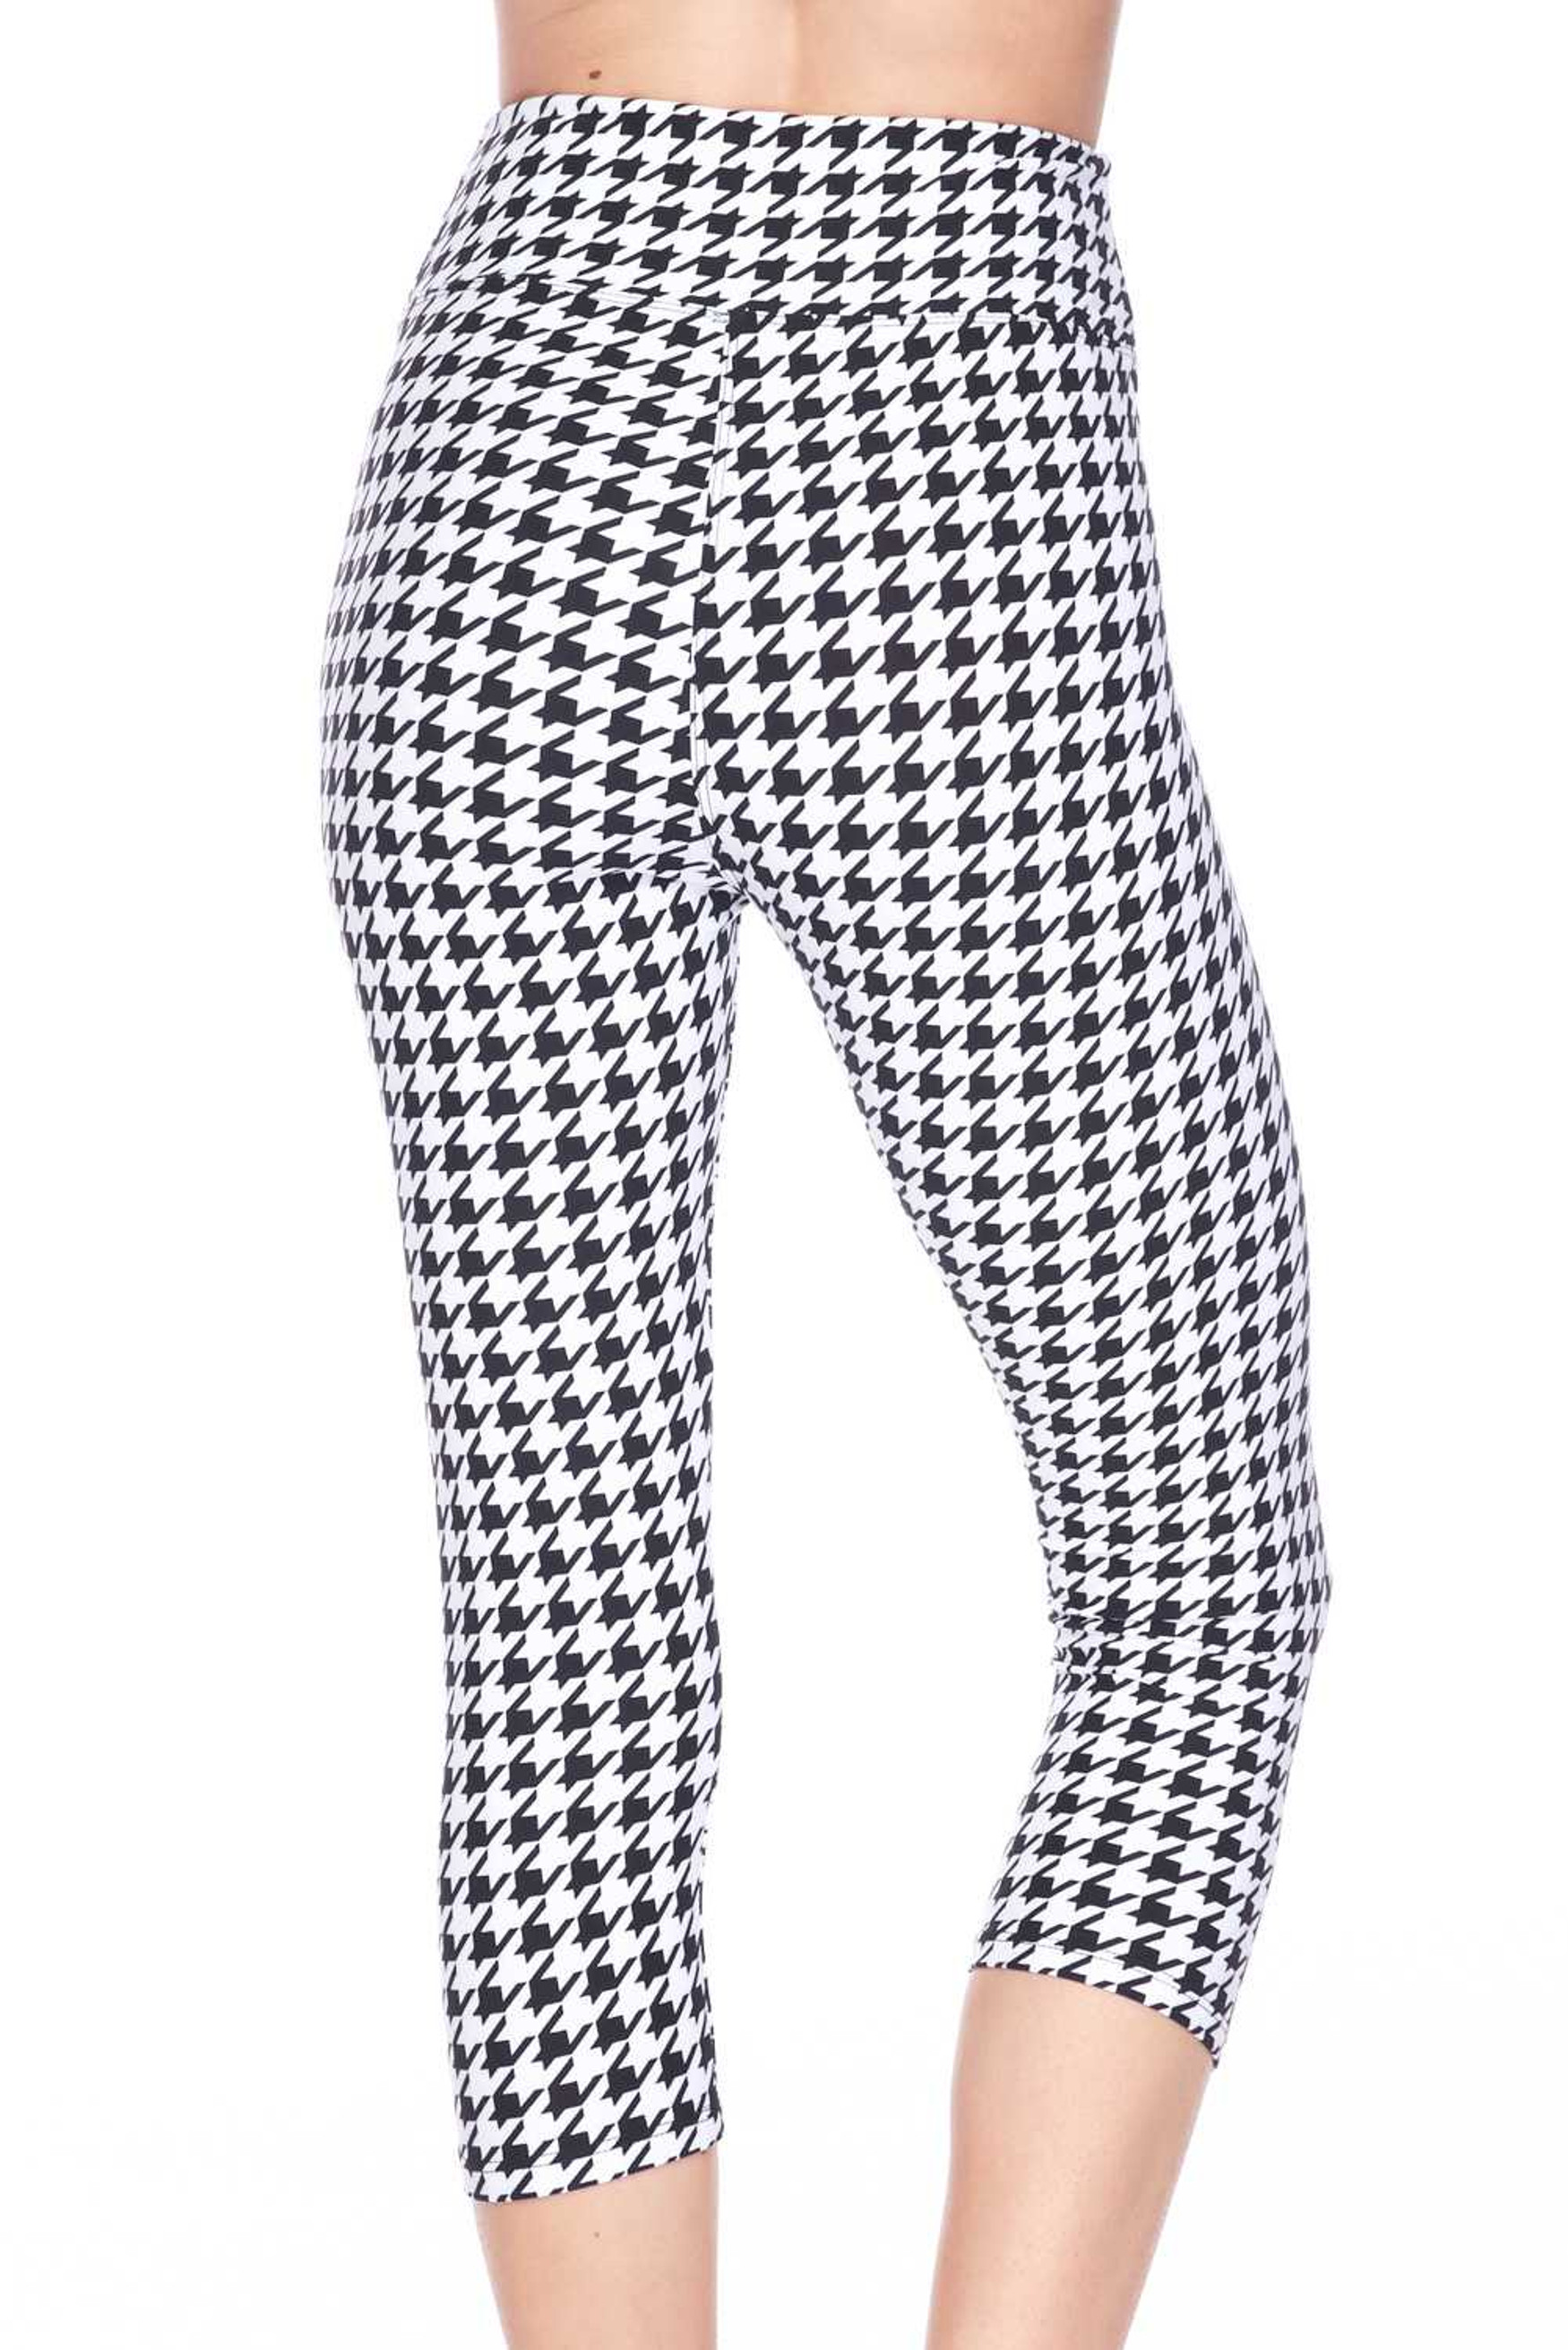 Buttery Soft Houndstooth Capris - 3 Inch Waist Band